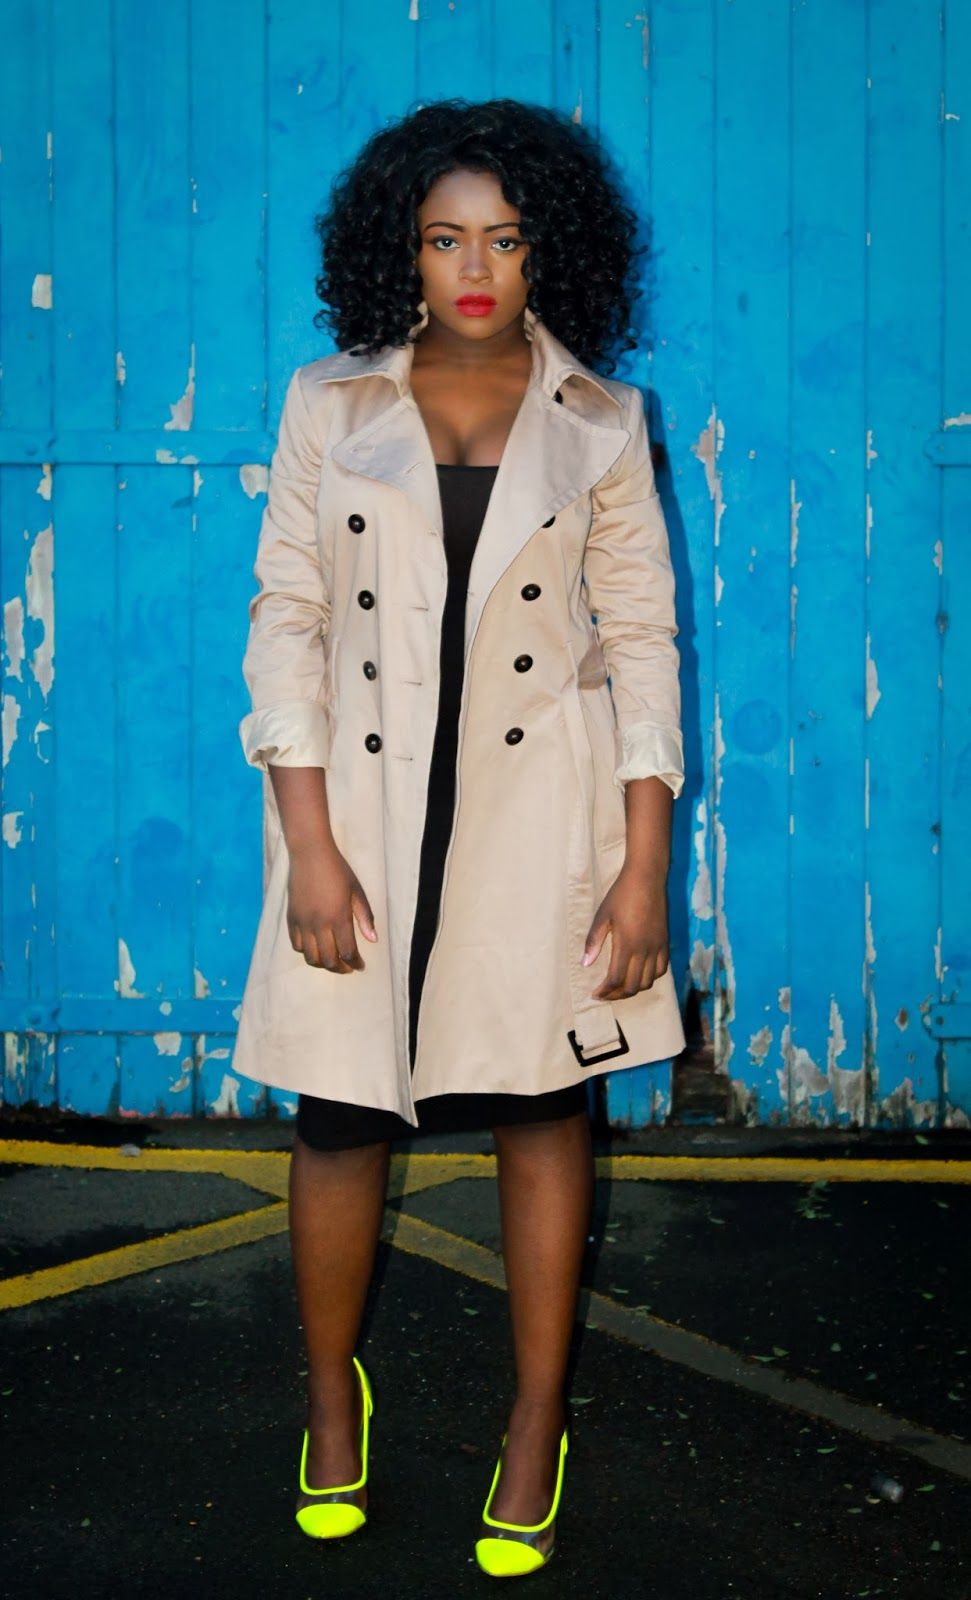 How to Style a Trench Coat | Electrik Flowers: How to Style a Trench Coat